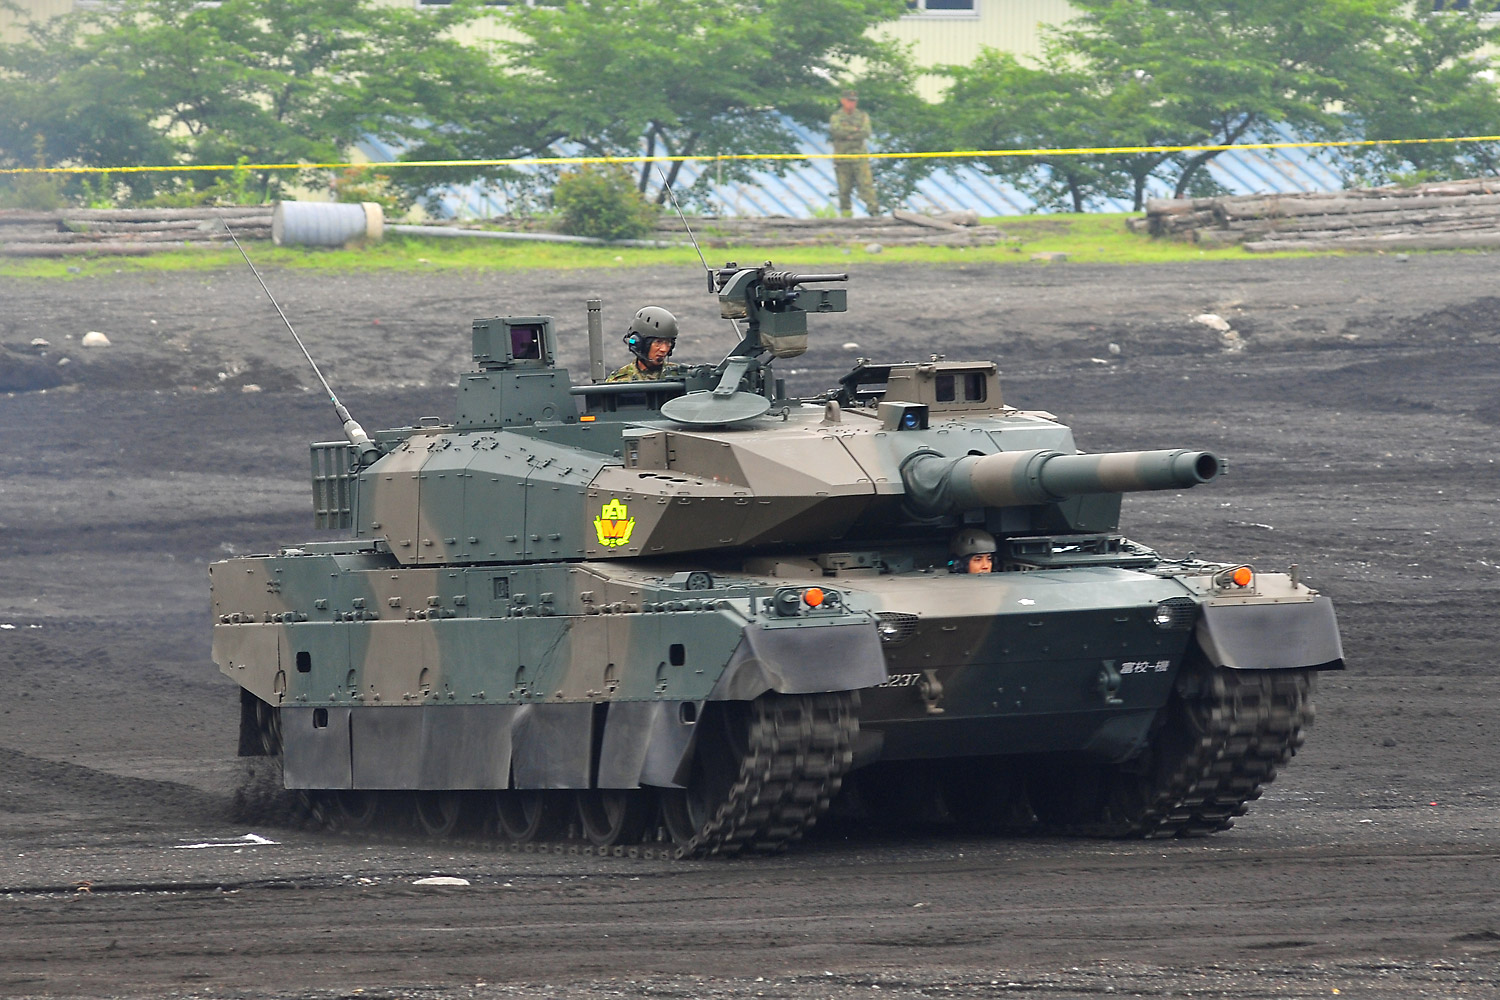 Description type10mbt